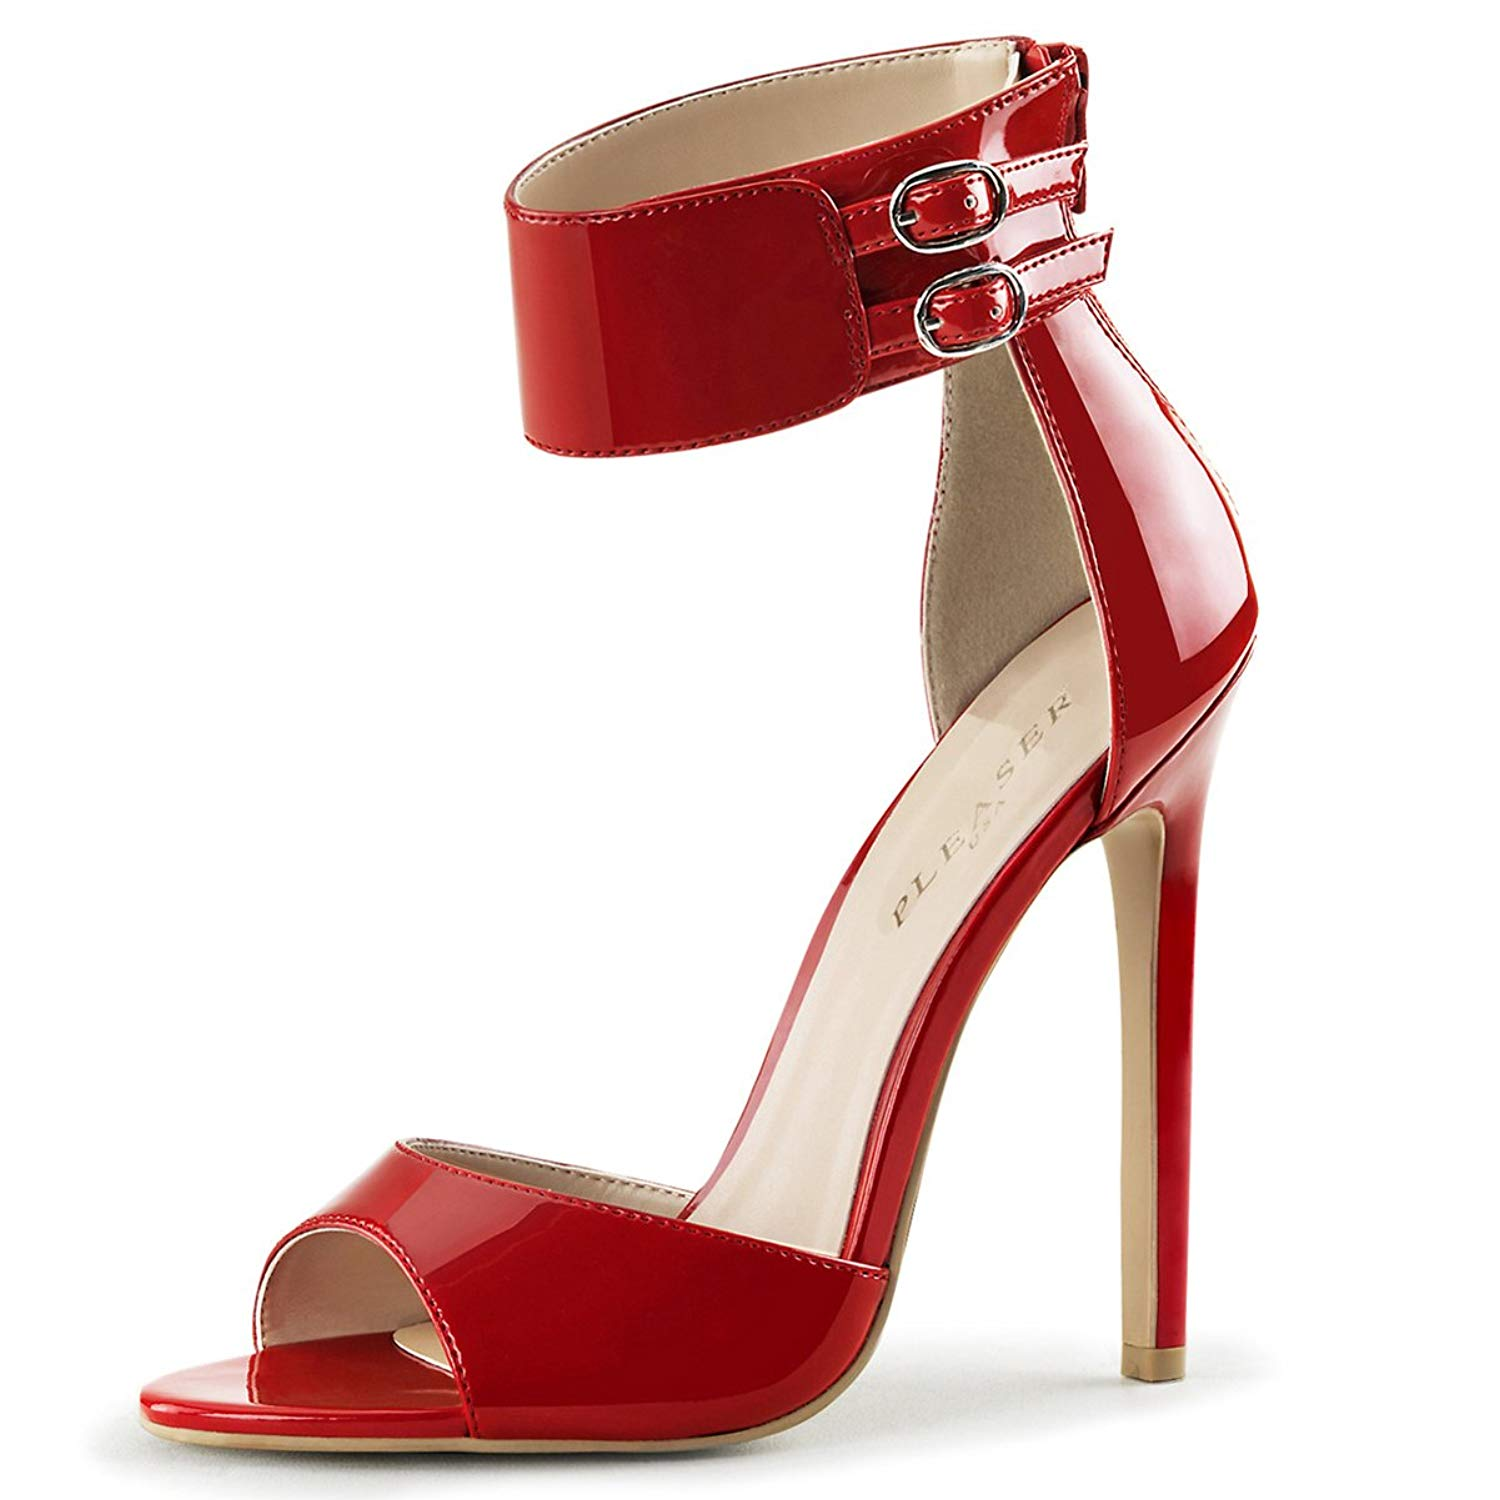 43e531f01e2 Cheap 5 Inch Red Heels, find 5 Inch Red Heels deals on line at ...